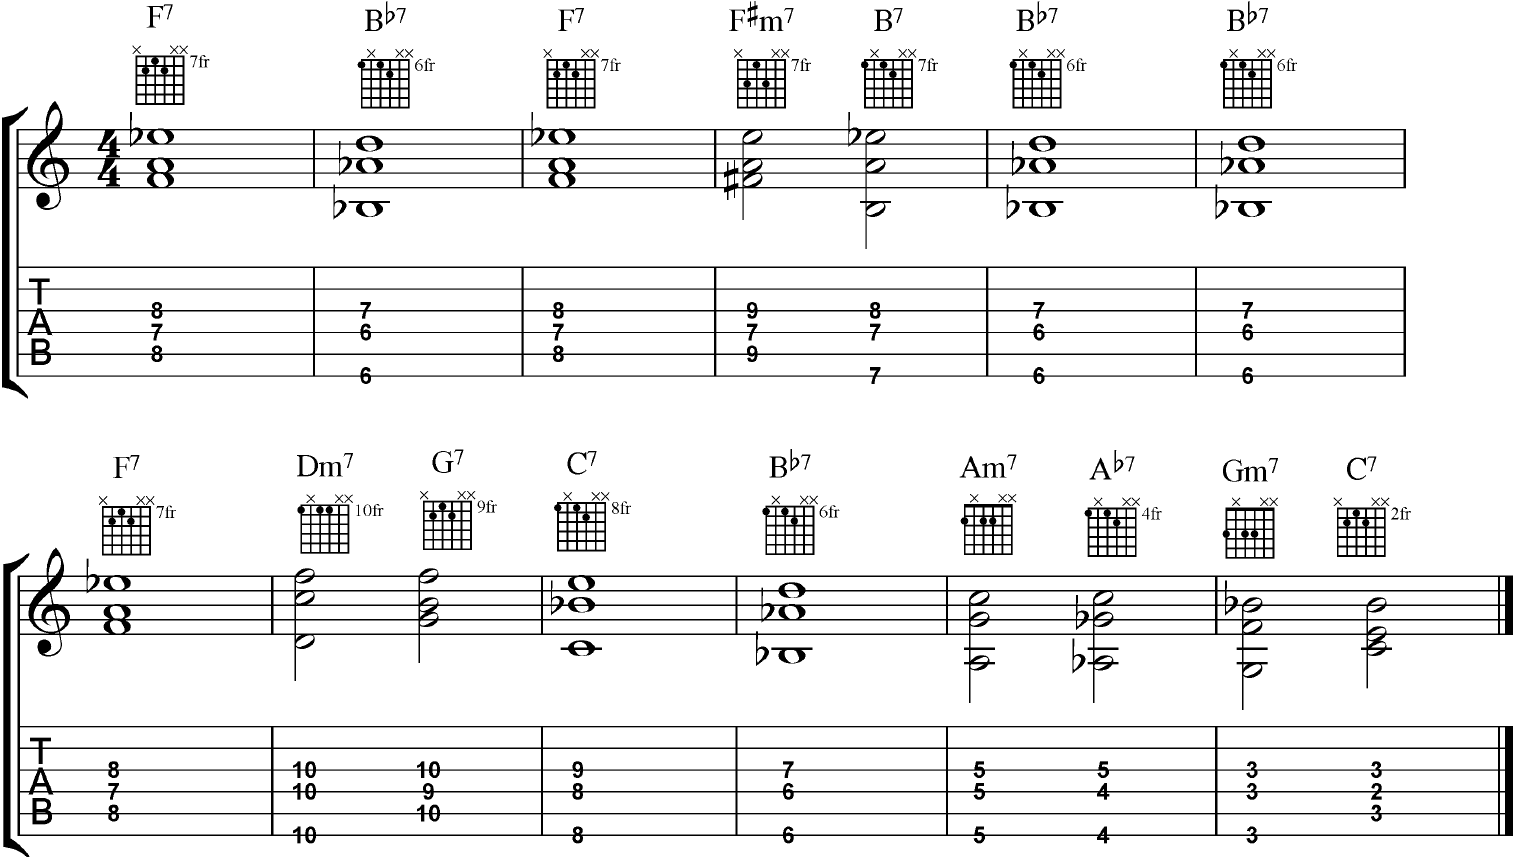 Voicing Leading in a Basic Blues Progression